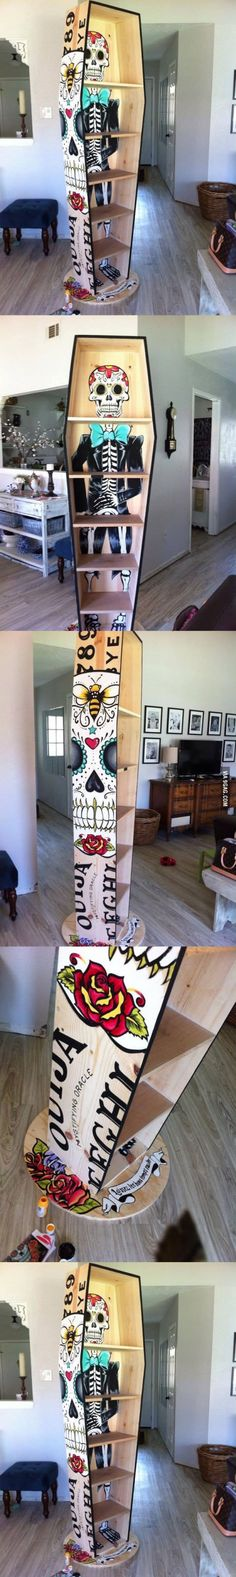 This is a bookshelf coffin that shows decoration for Dia de los Muertos. Since dead people are placed in a coffin this is represents the dead of course. Hm Deco, Tattoo Und Piercing, Decoration Inspiration, Home And Deco, Day Of The Dead, Coffin, Cool Furniture, Halloween Decorations, Projects To Try